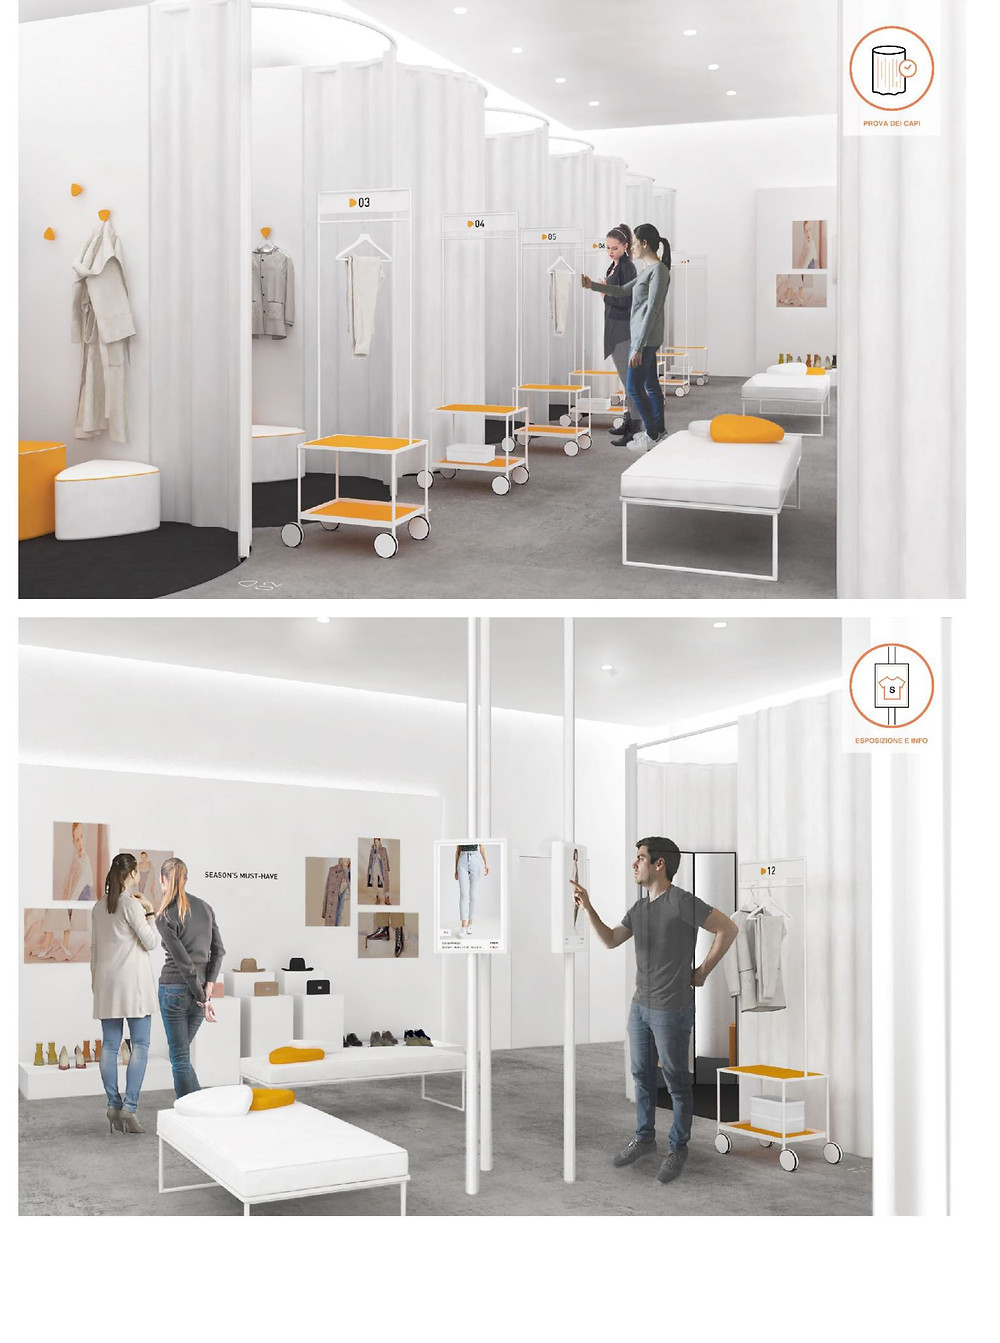 new fitting room project by Ilaria Marelli